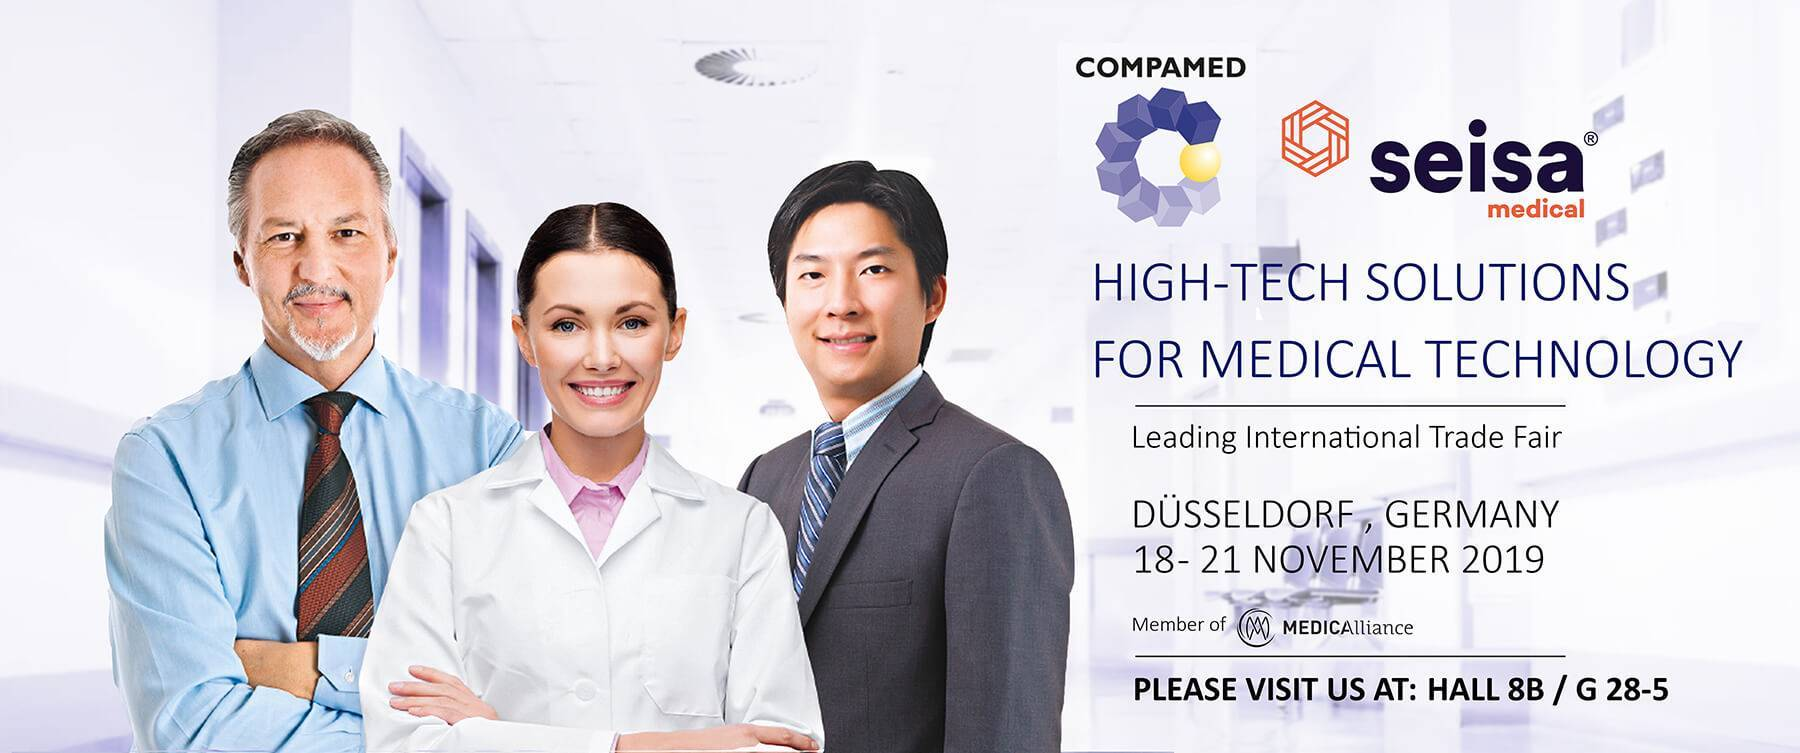 Seisa exhibiting at COMPAMED Düsseldorf Germany 2019